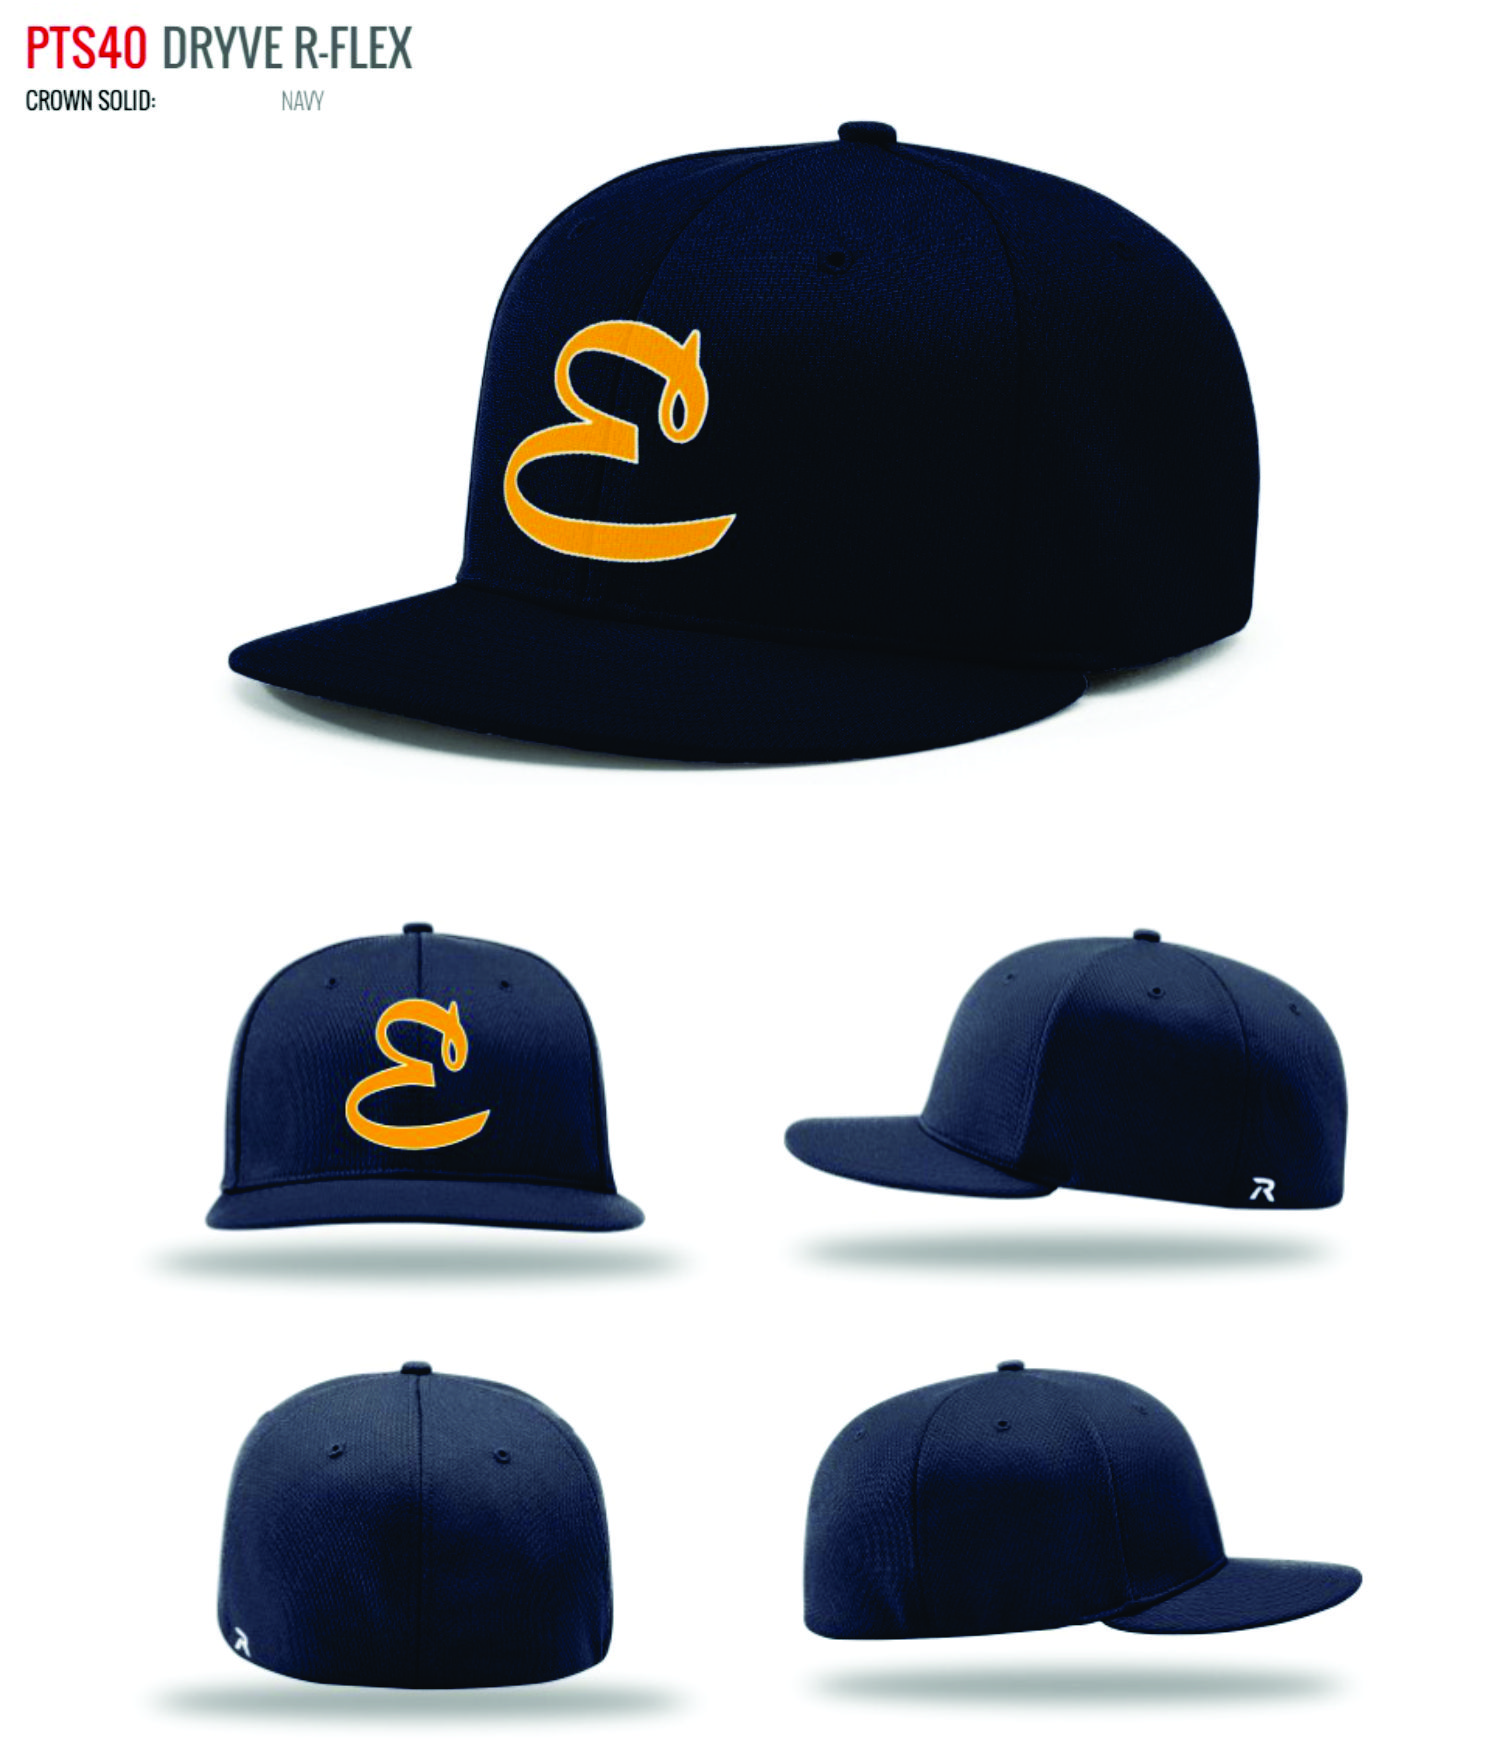 9188ffba0fb FITTED PLAYER CAP - PTS-40 - RETAIL